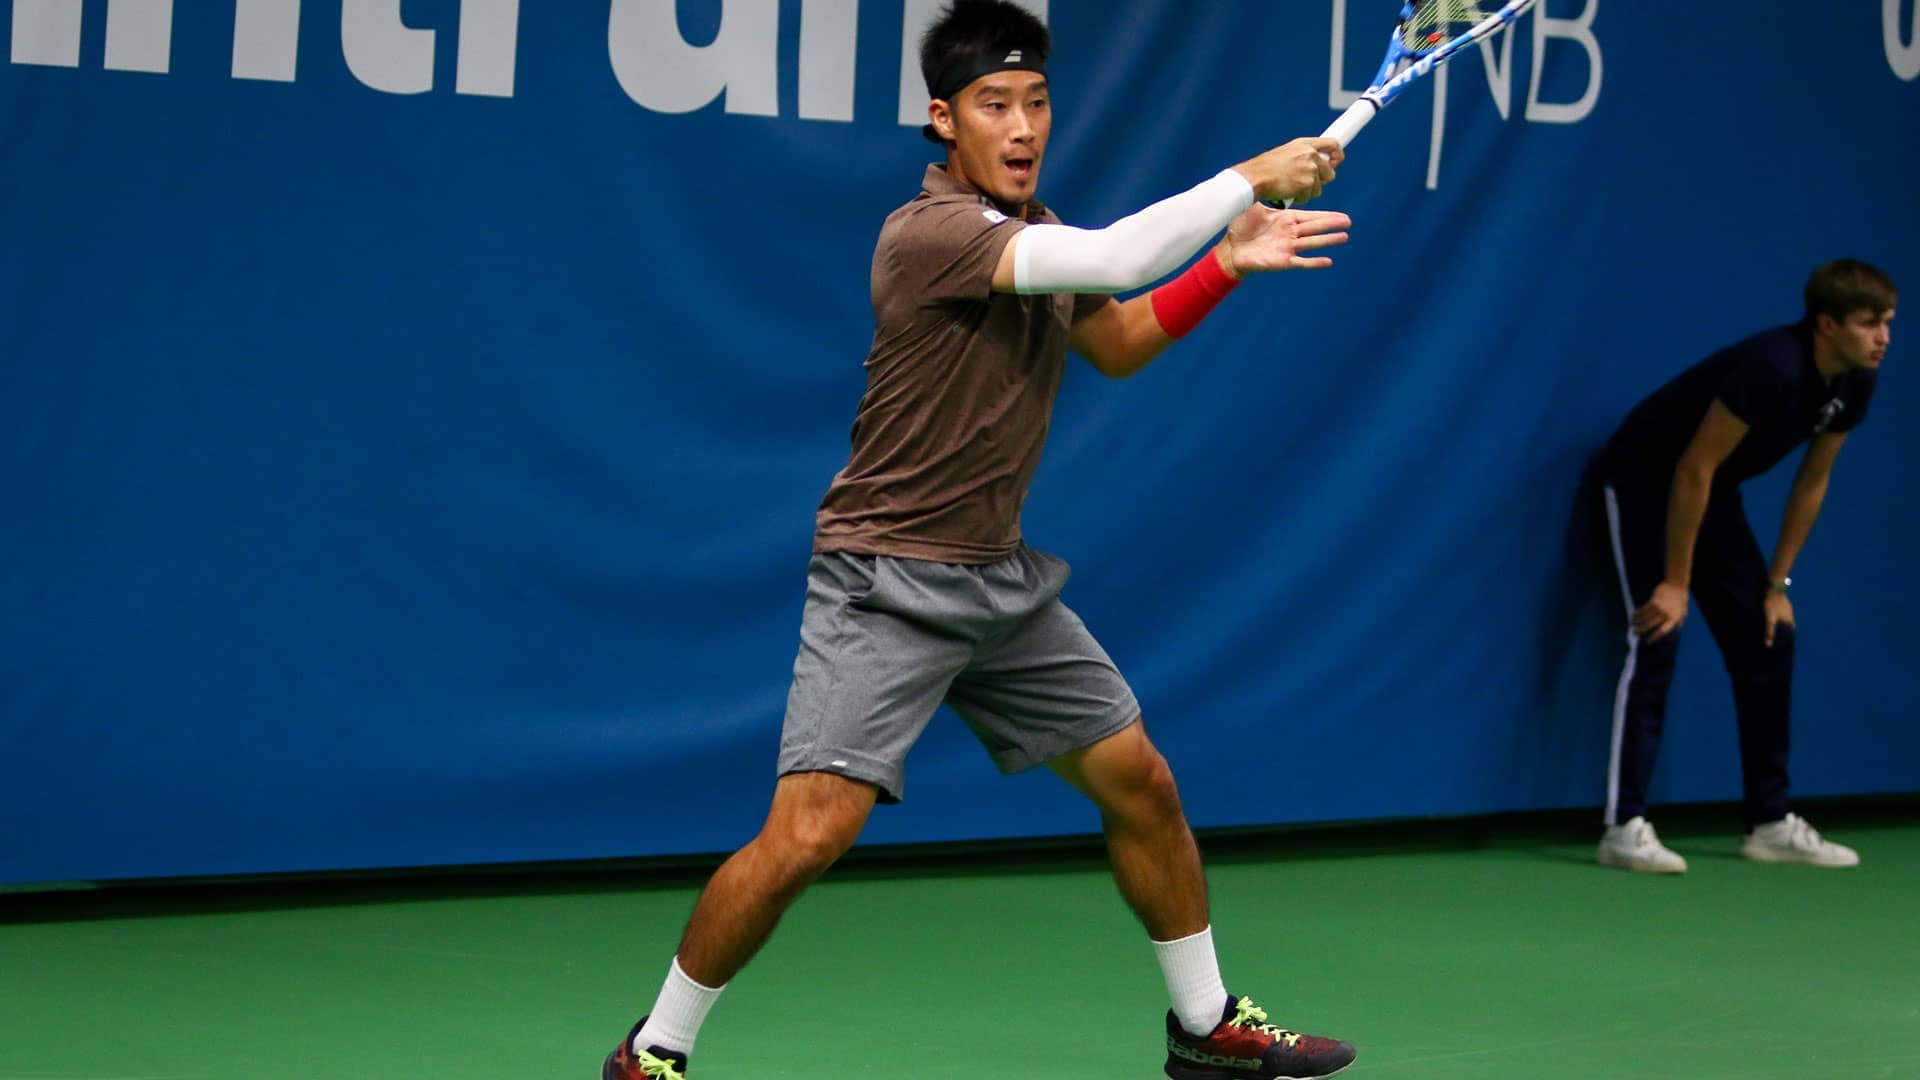 <a href='https://www.atptour.com/en/players/yuichi-sugita/se73/overview'>Yuichi Sugita</a> hits a forehand in Stockholm 2019